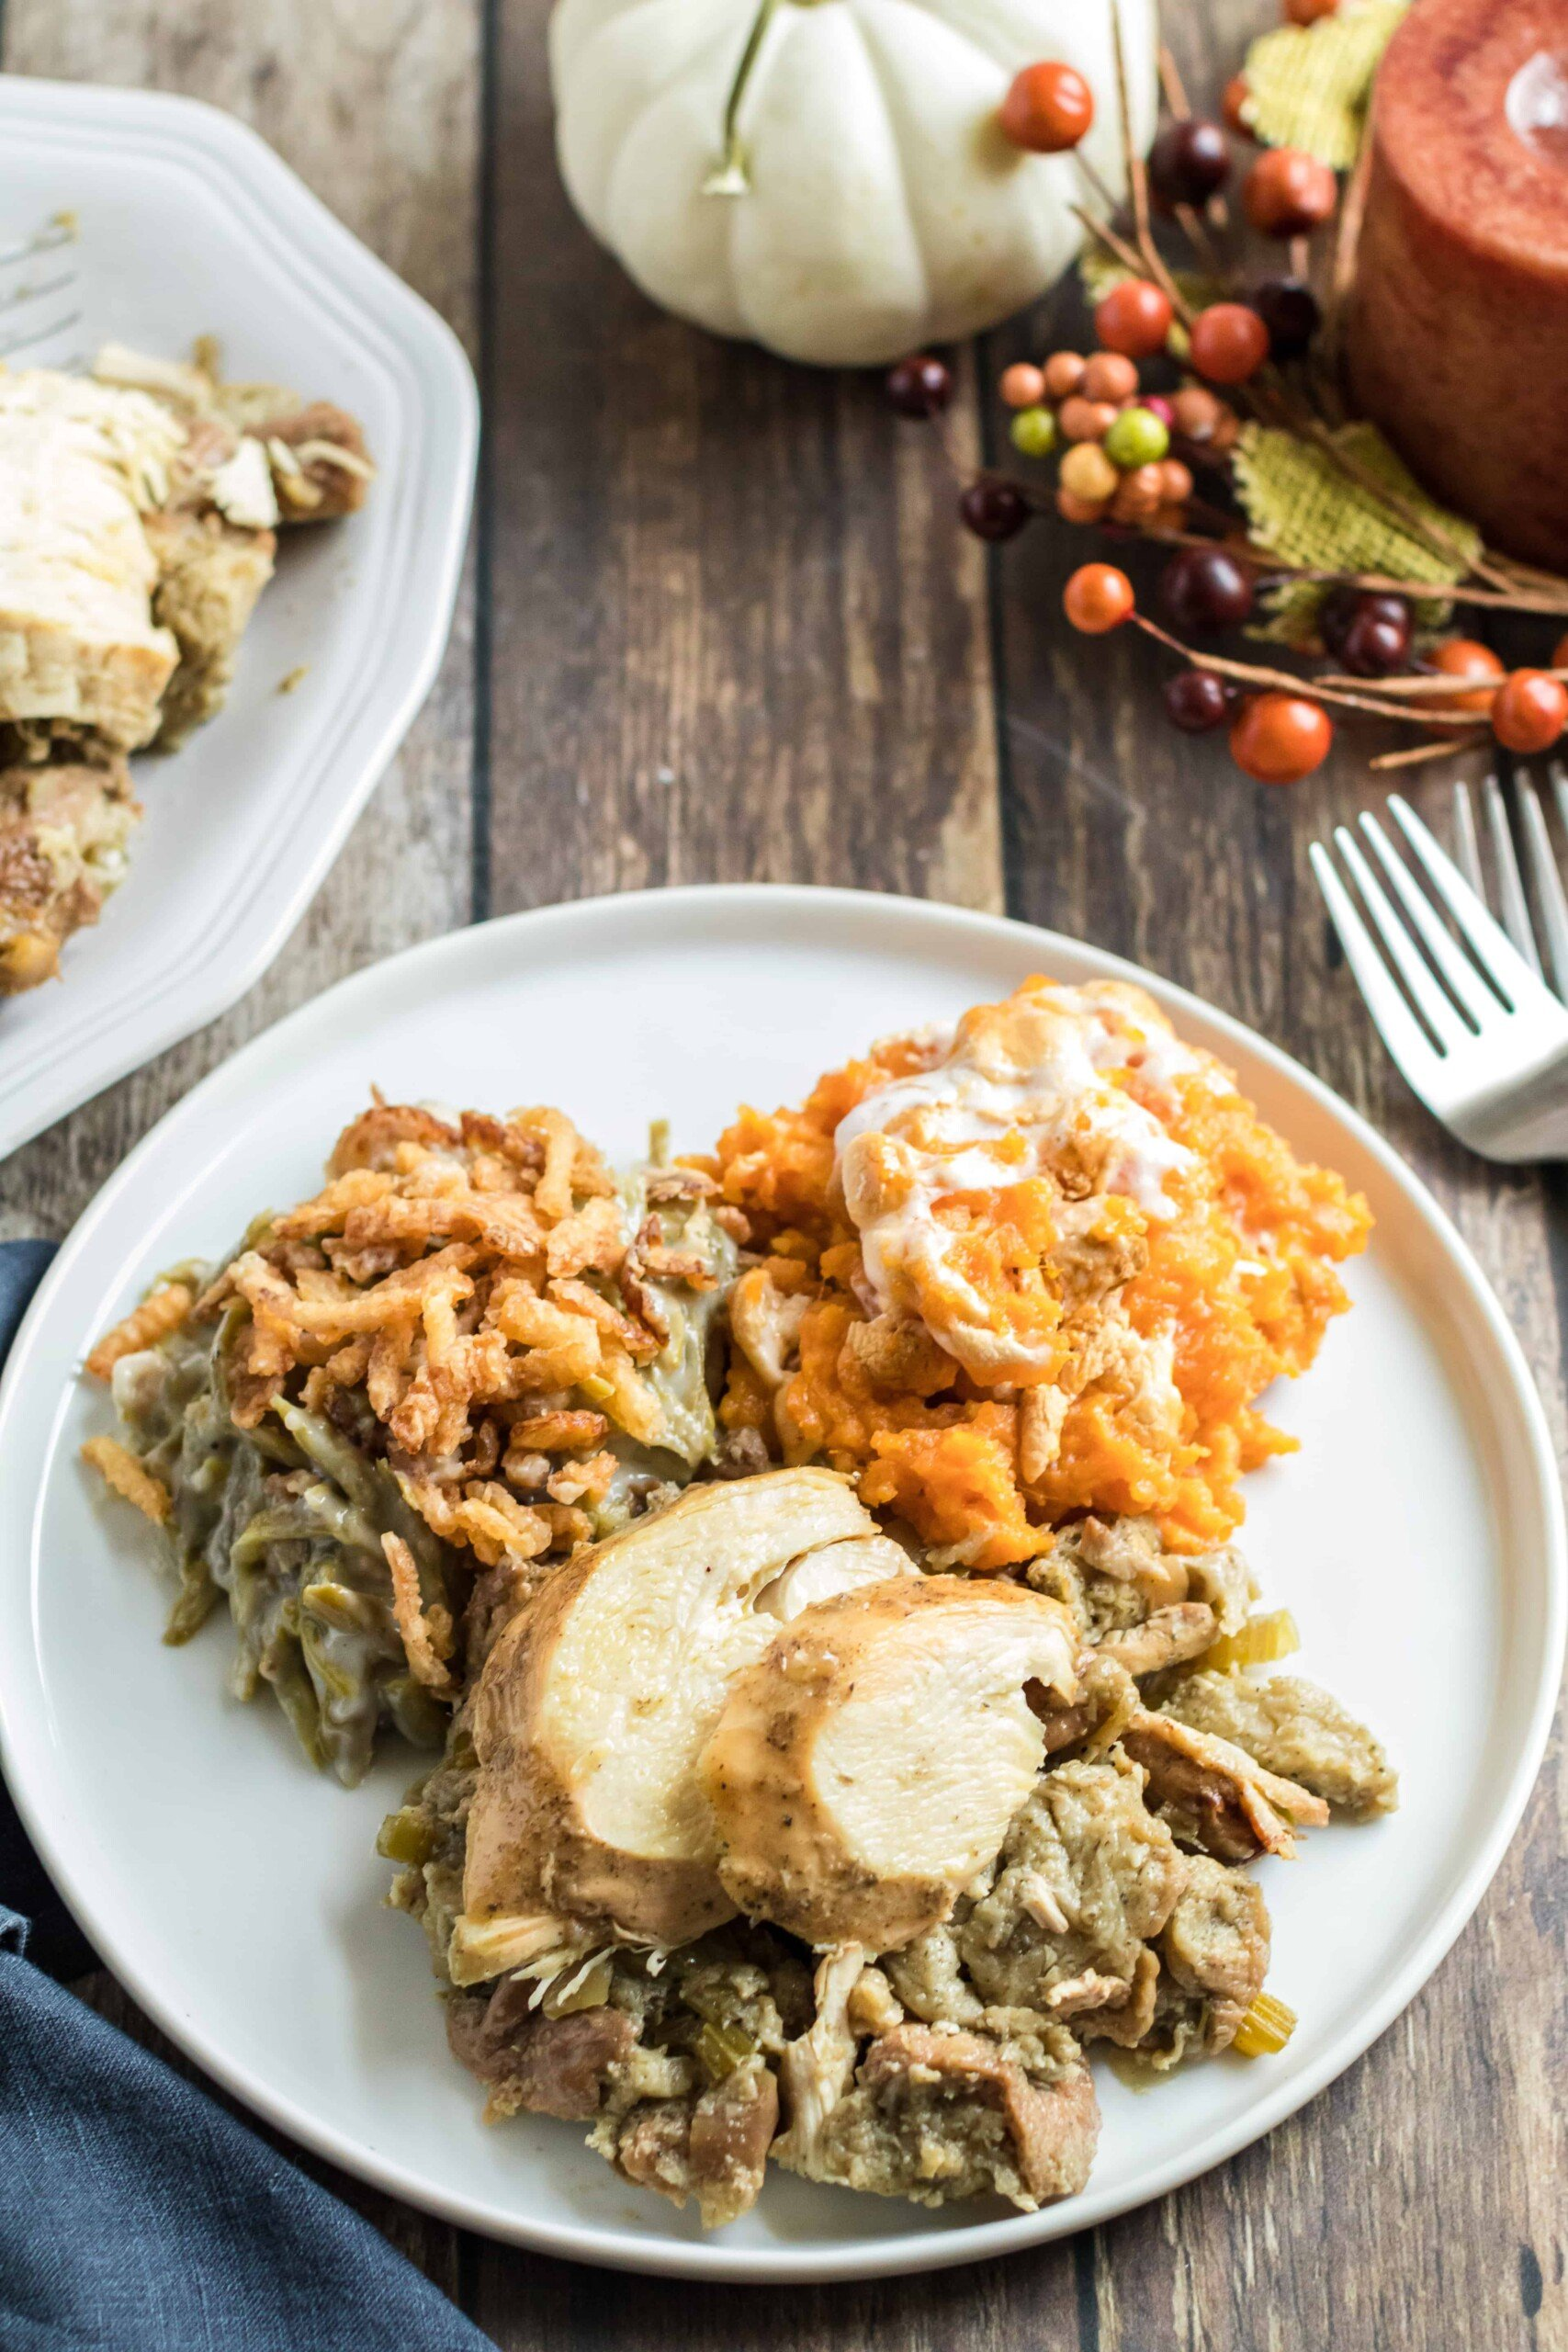 Dinner plate with a scoop of turkey and stuffing with sweet potato casserole and green bean casserole.